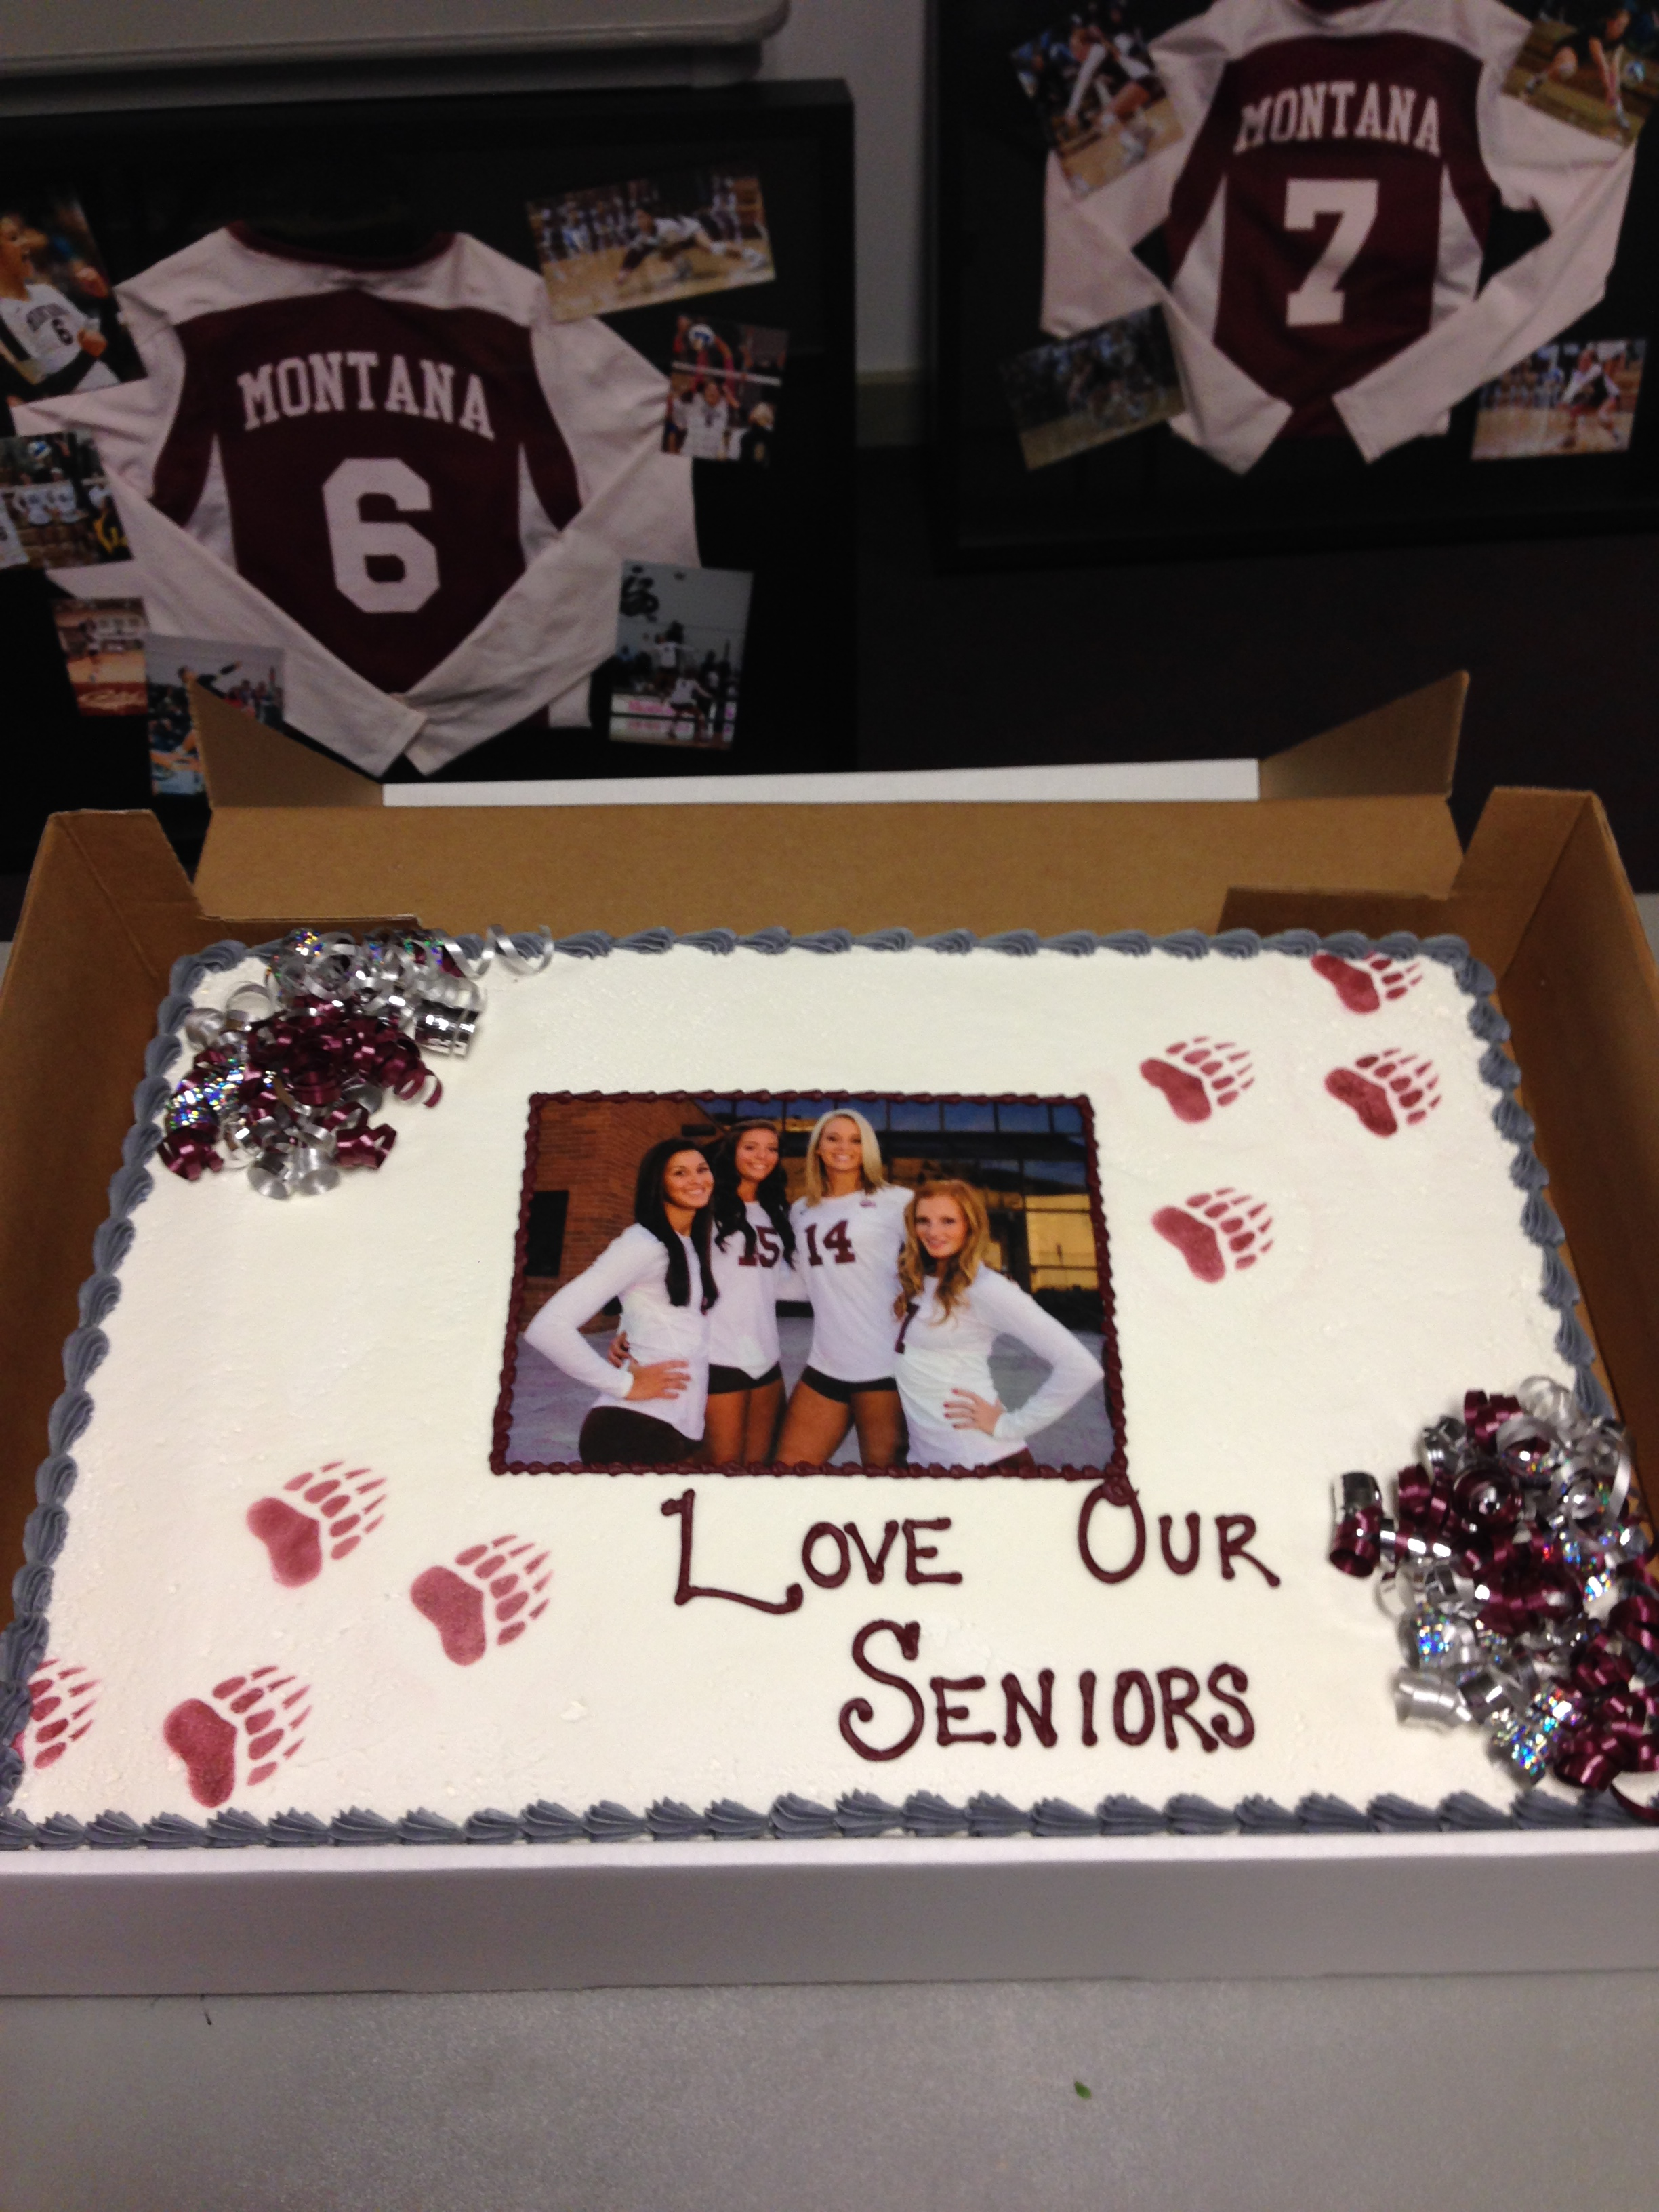 Congrats to our volleyball seniors (Brooke Bray, Kayla Reno, Kortney James, and Megan Murphey) on great careers.